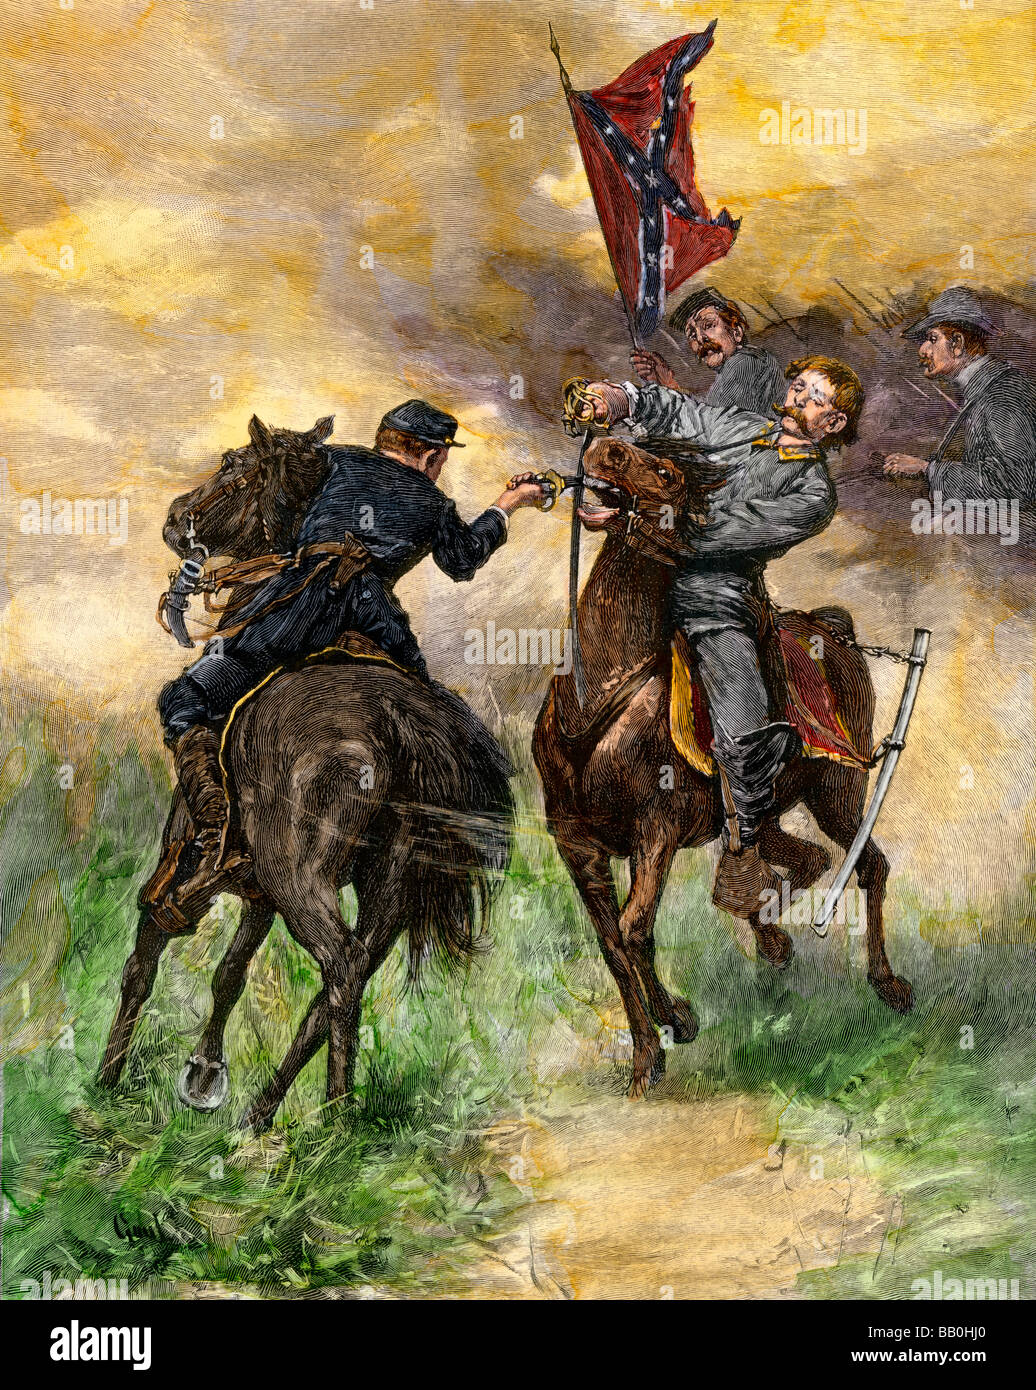 Cavalry duel during a Civil War battle - Stock Image